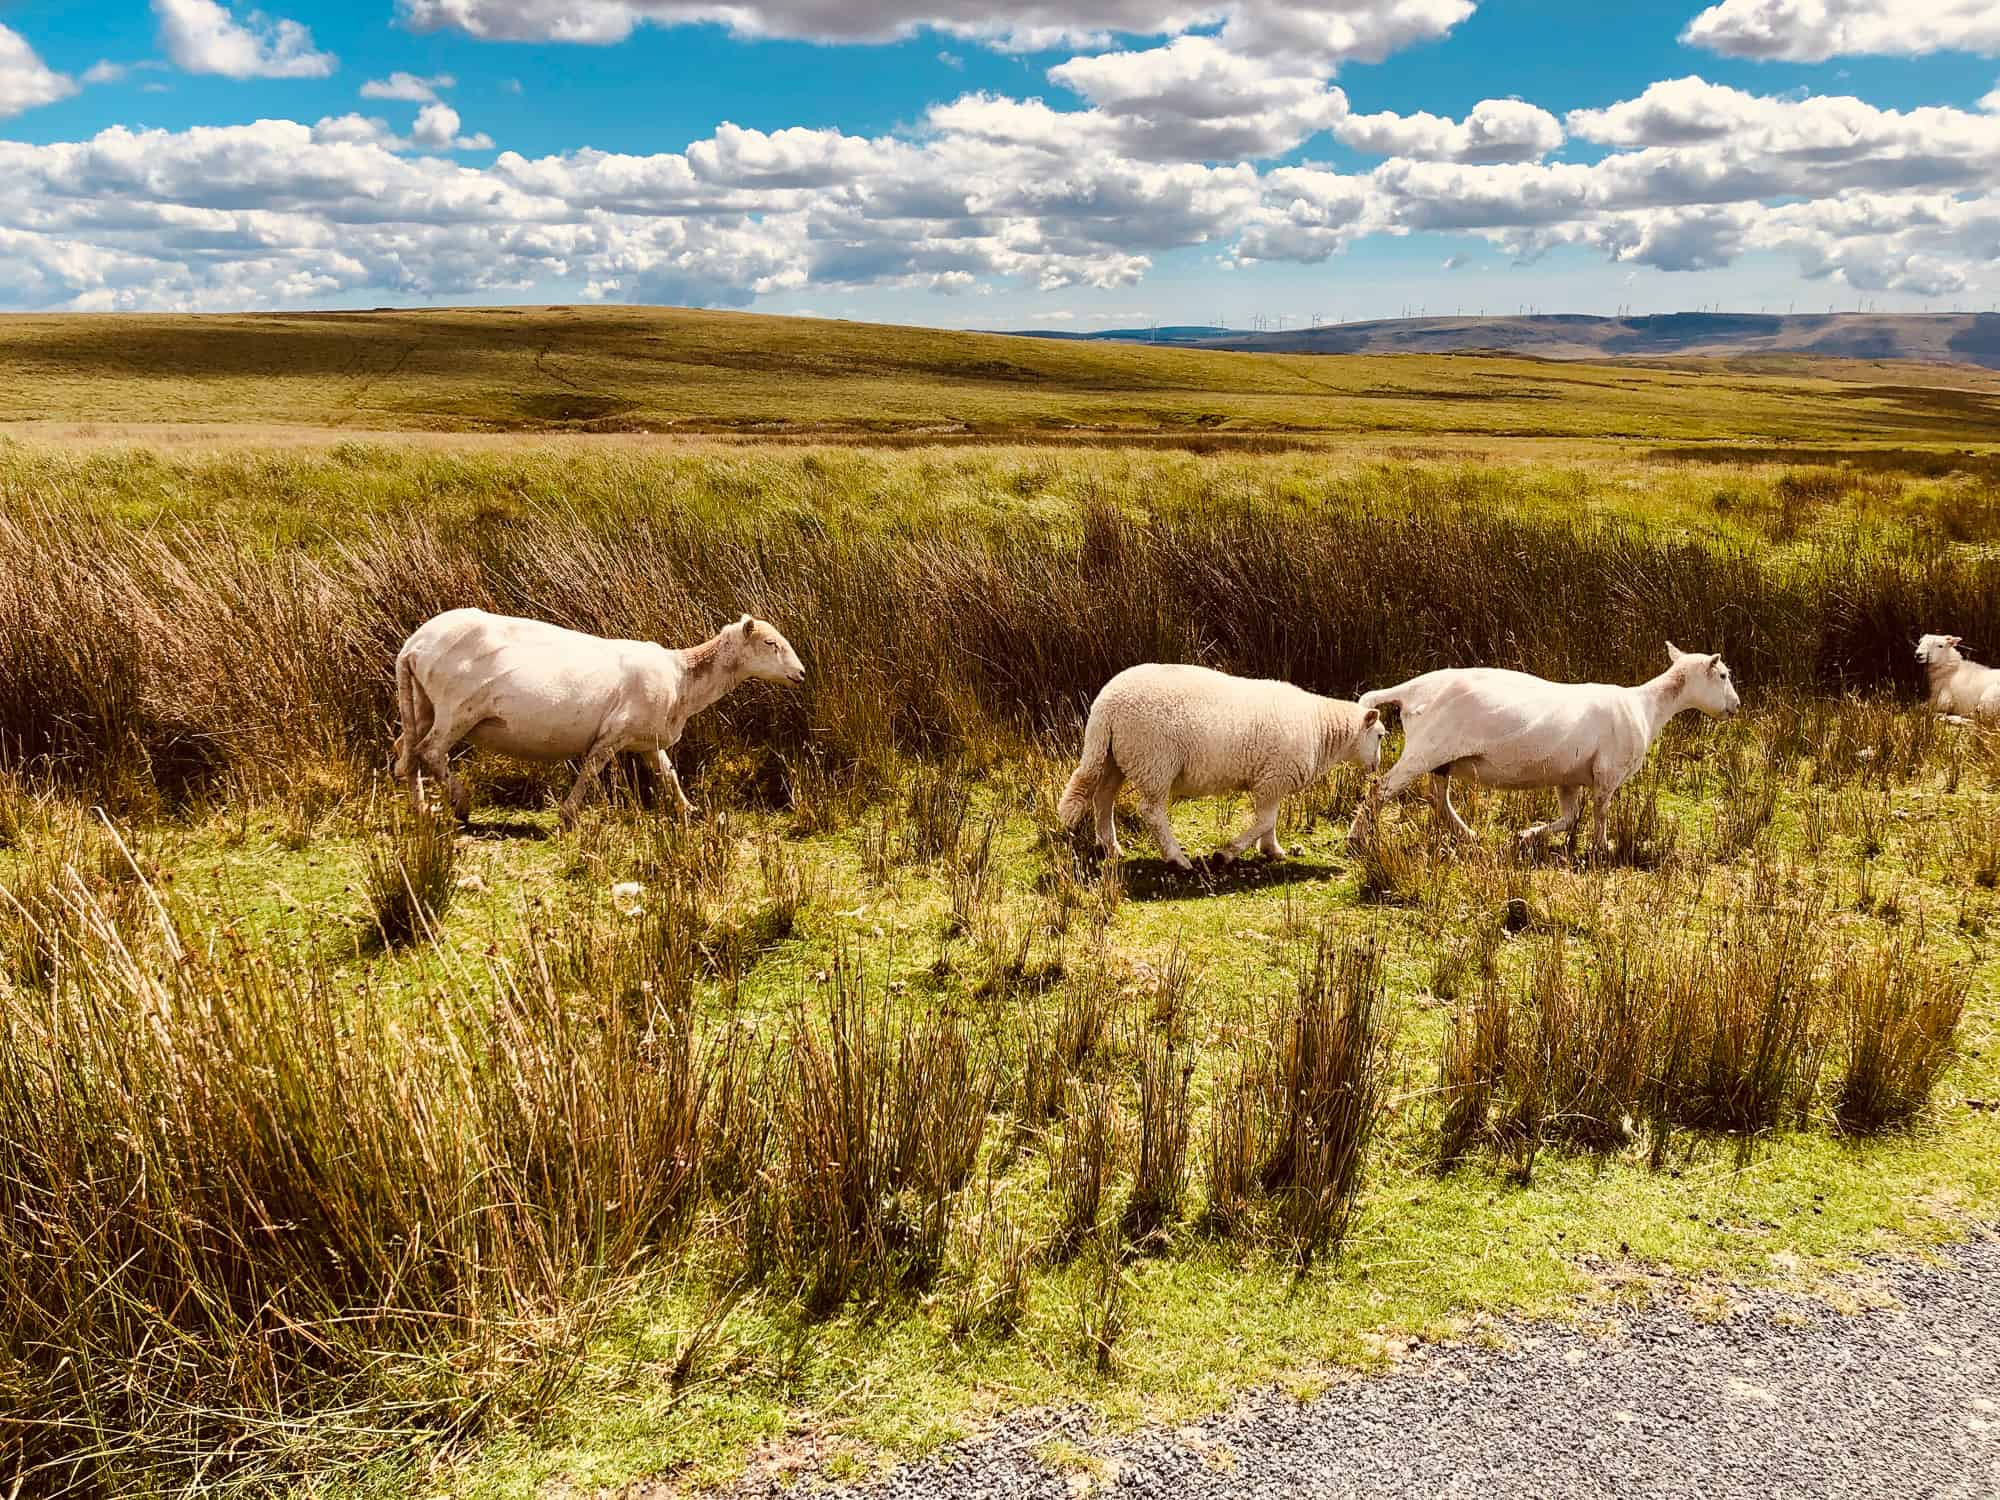 Wales - Brecons - Sheep on the road - wales Road trip itinerary